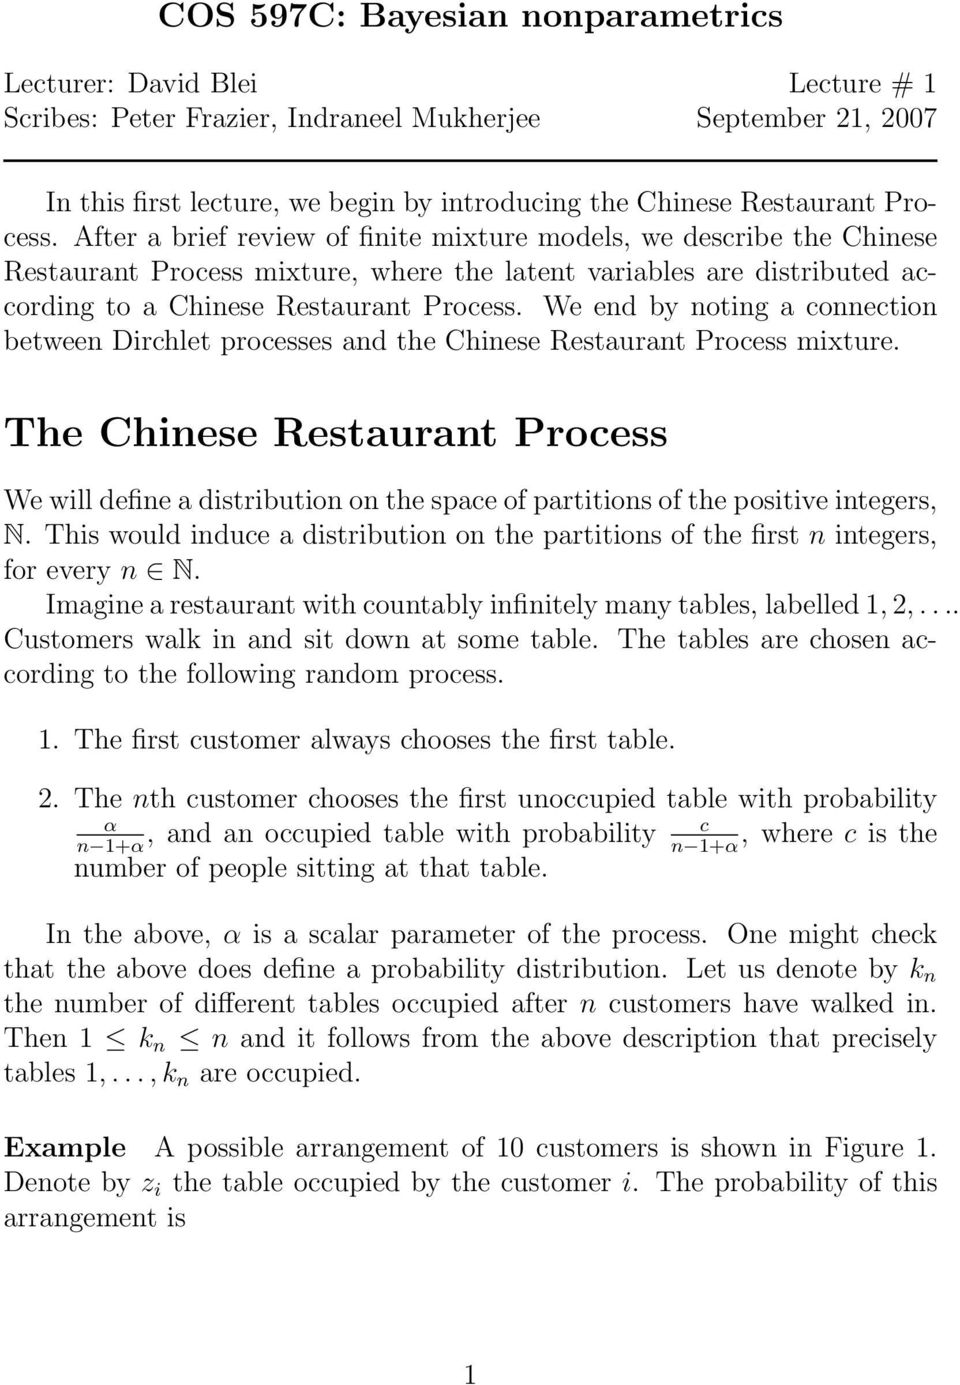 We end by noting a connection between Dirchlet processes and the Chinese Restaurant Process mixture.